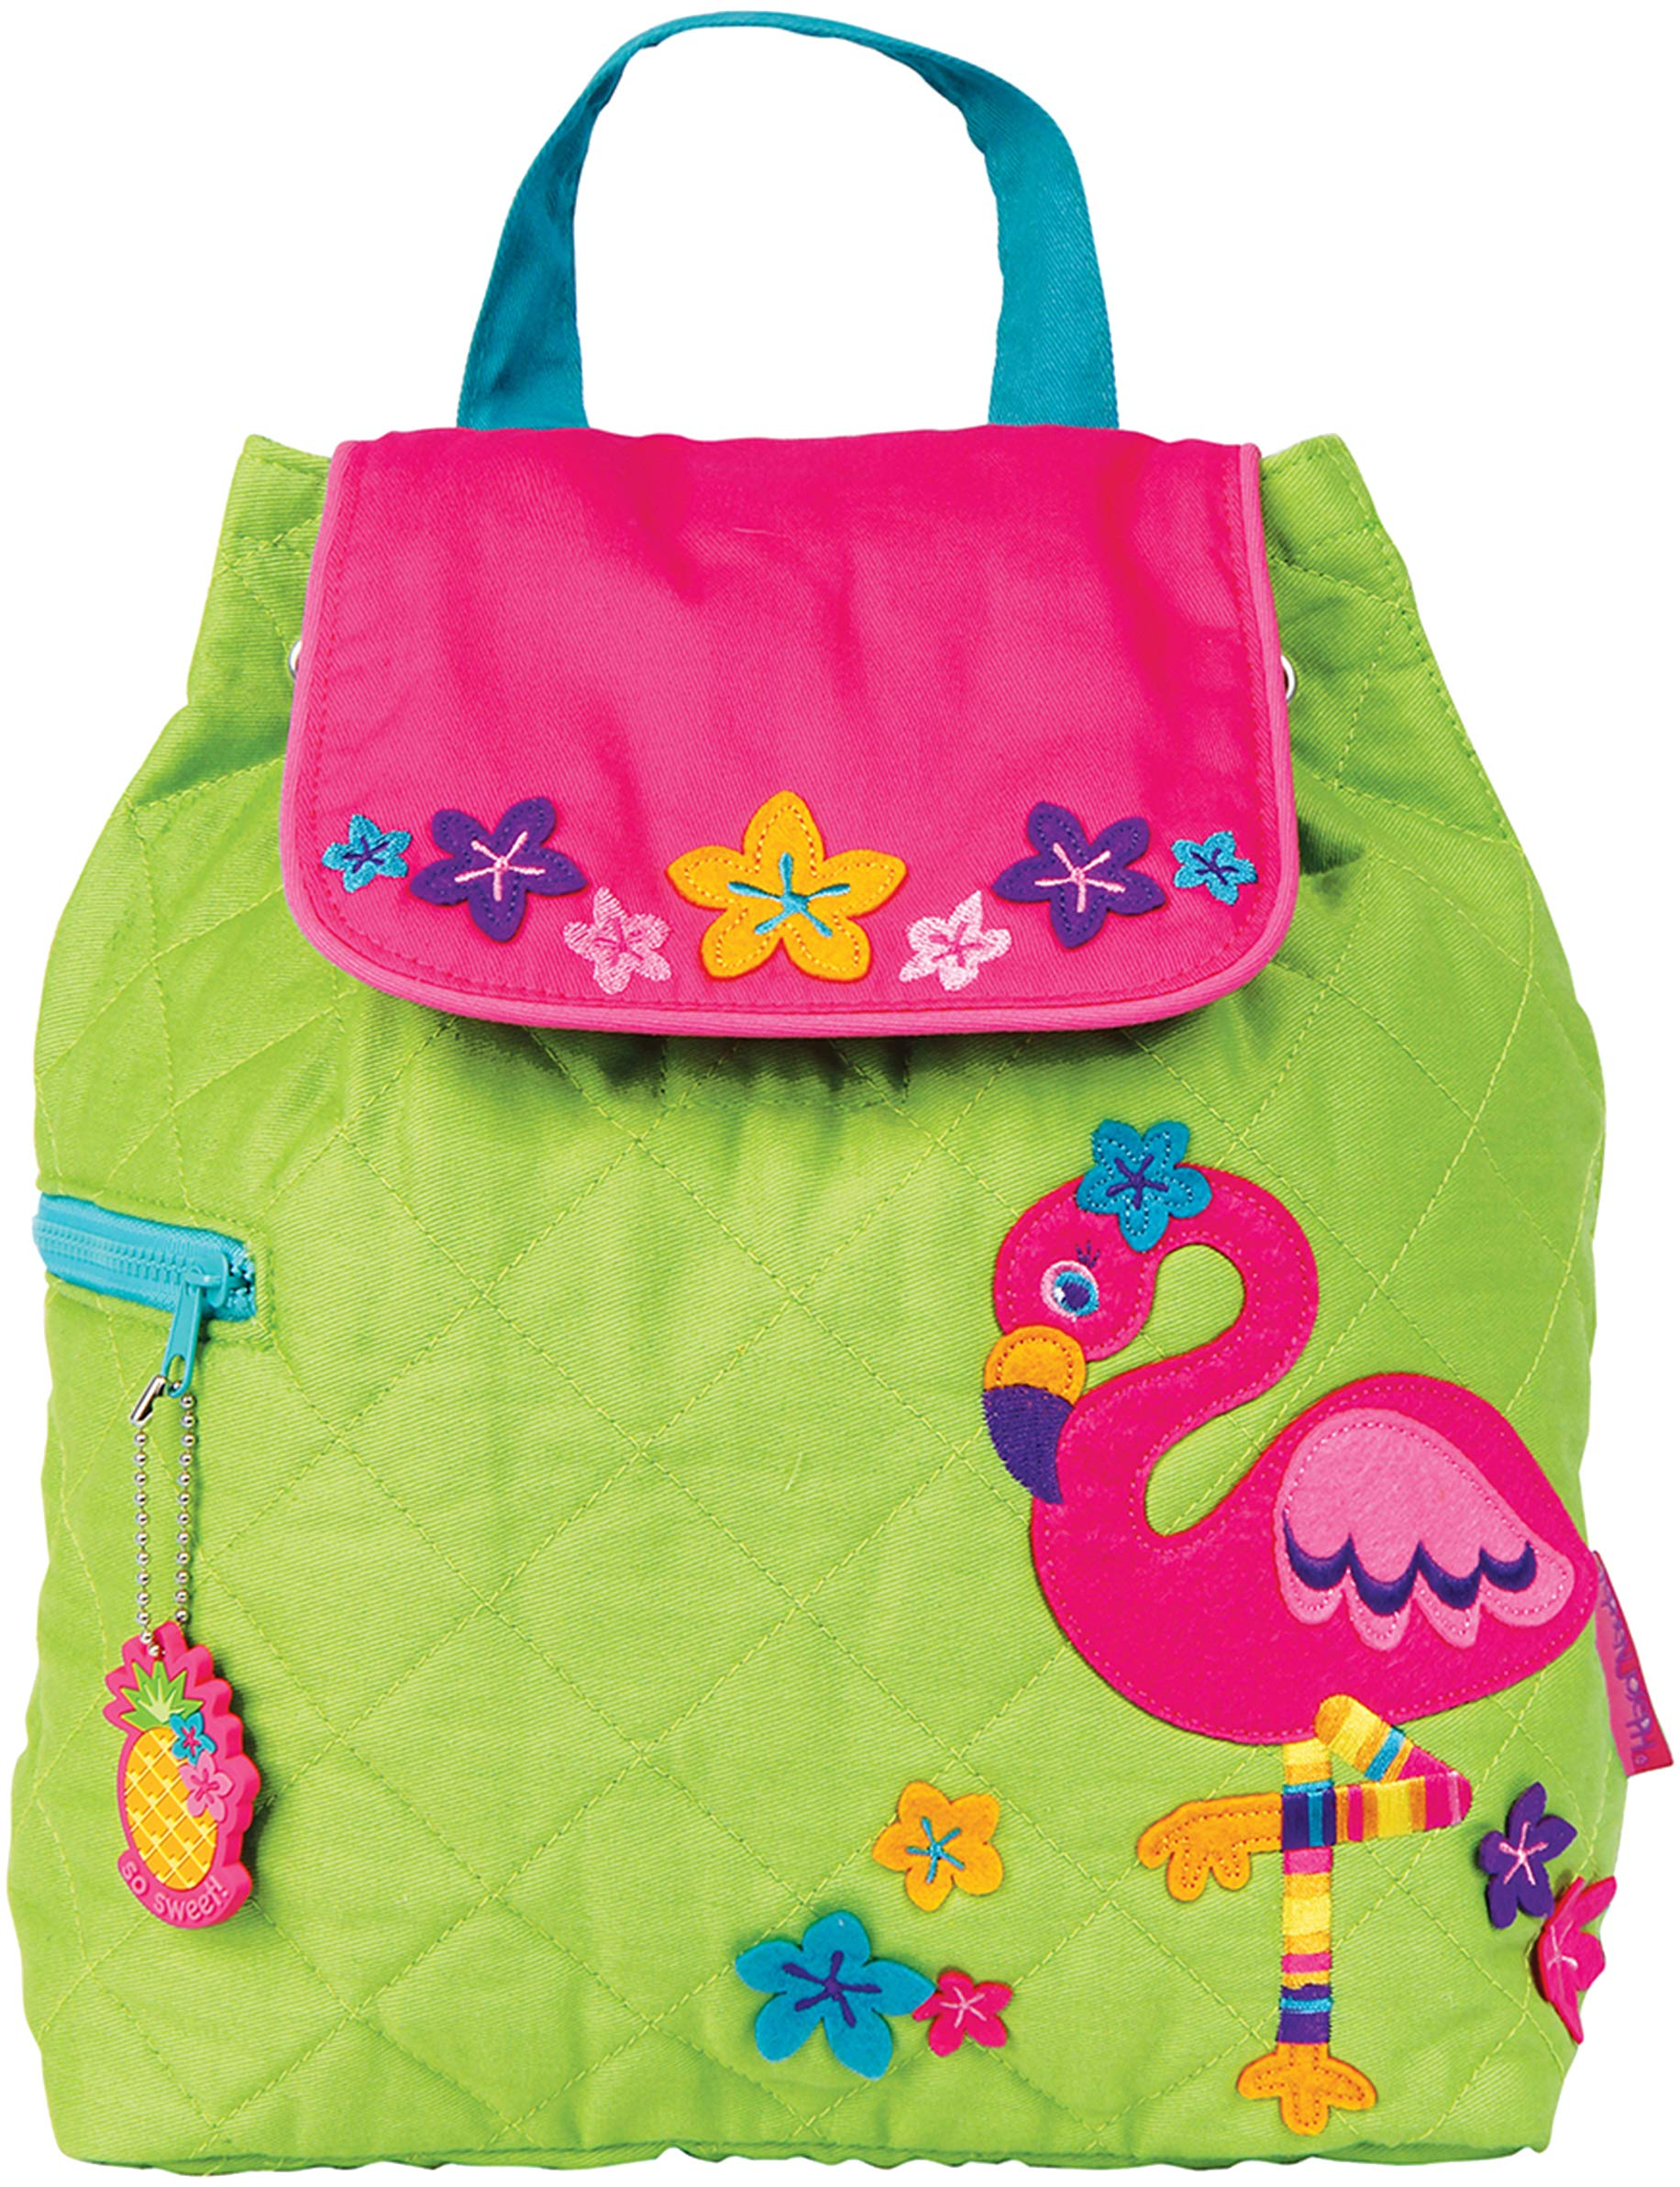 Stephen Joseph Quilted Backpack, Flamingo,One Size